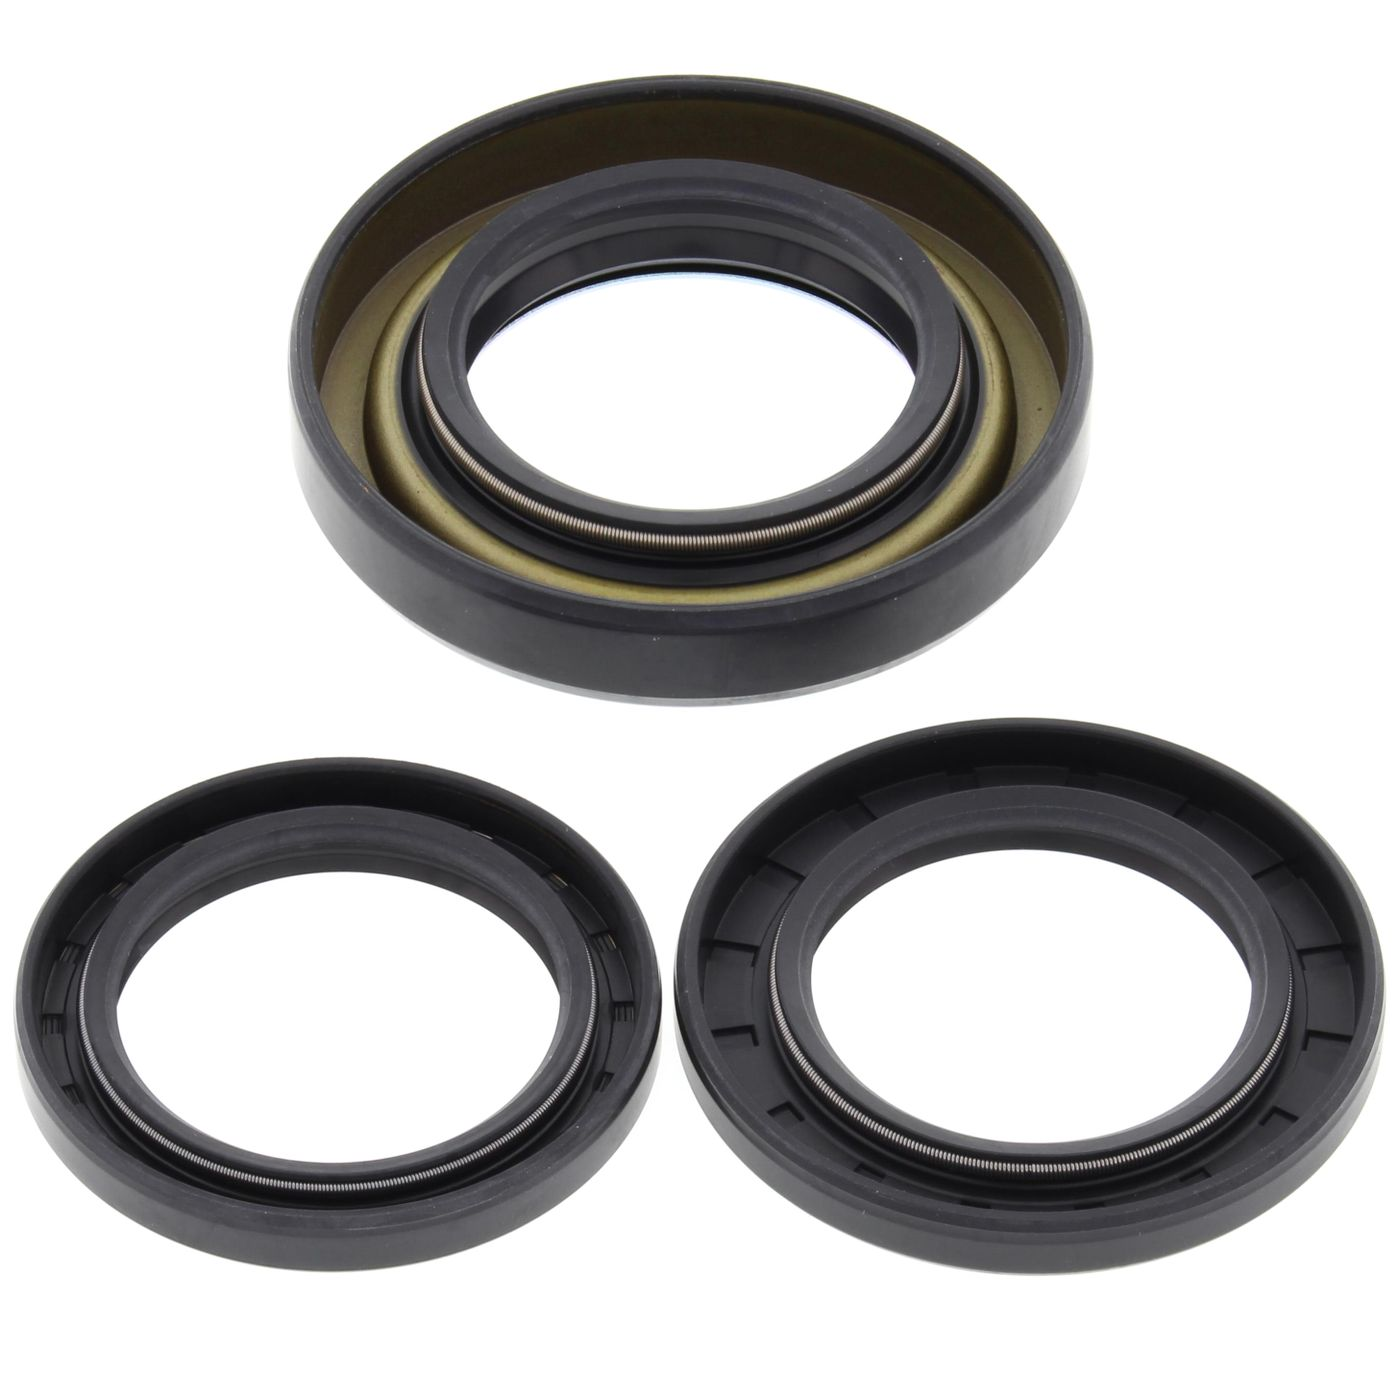 Wrp Diff Seal Kits - WRP252008-5 image